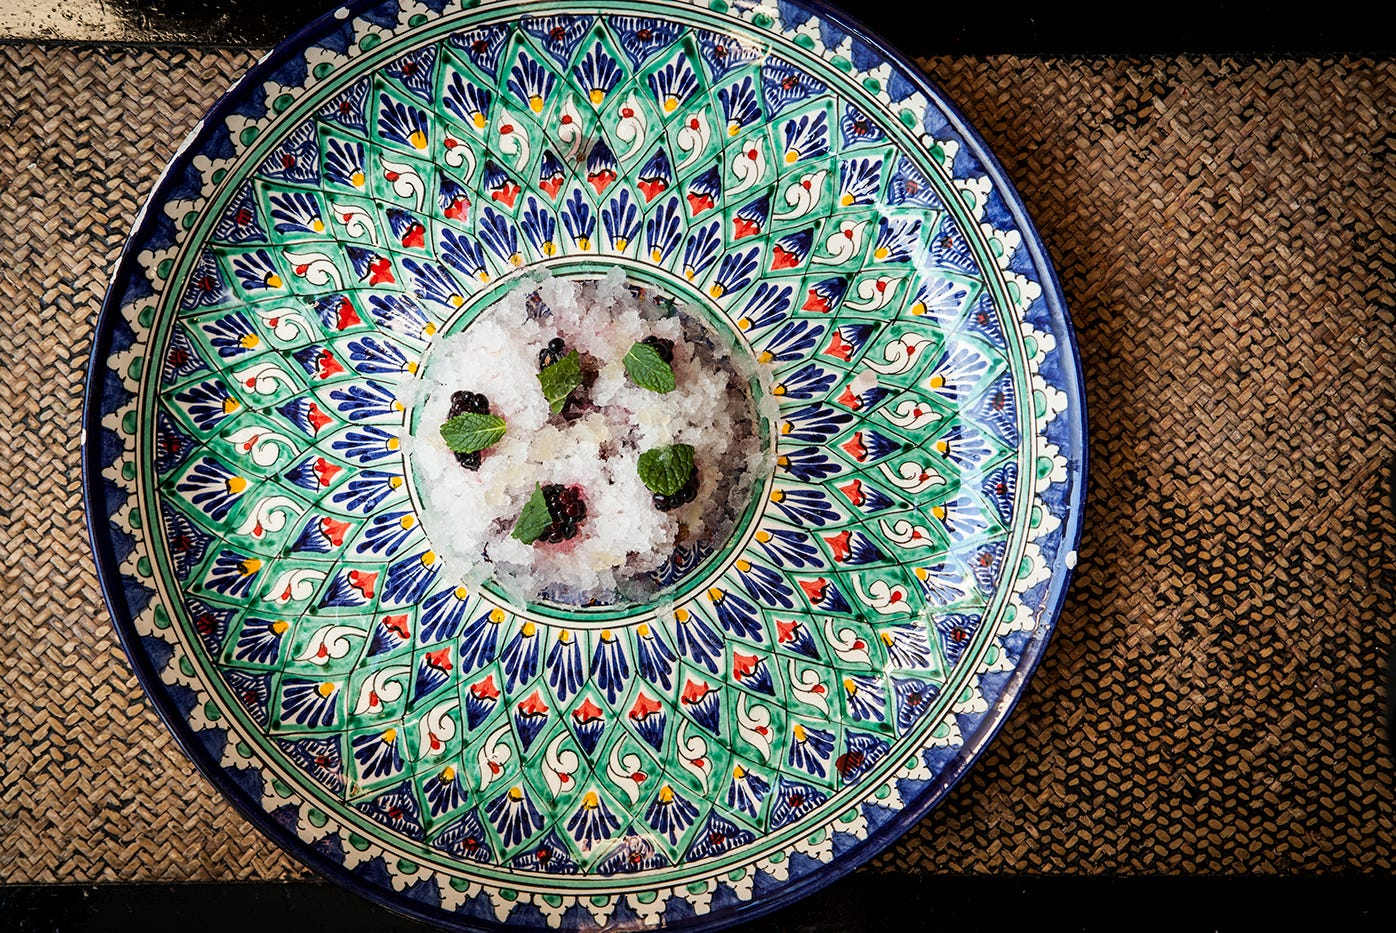 An overhead of photo of a large colourful plate on a rattan mat. In the centre of the plate is a pile of granita, decorated with black mulberries, mint leaves and pieces of mochi.